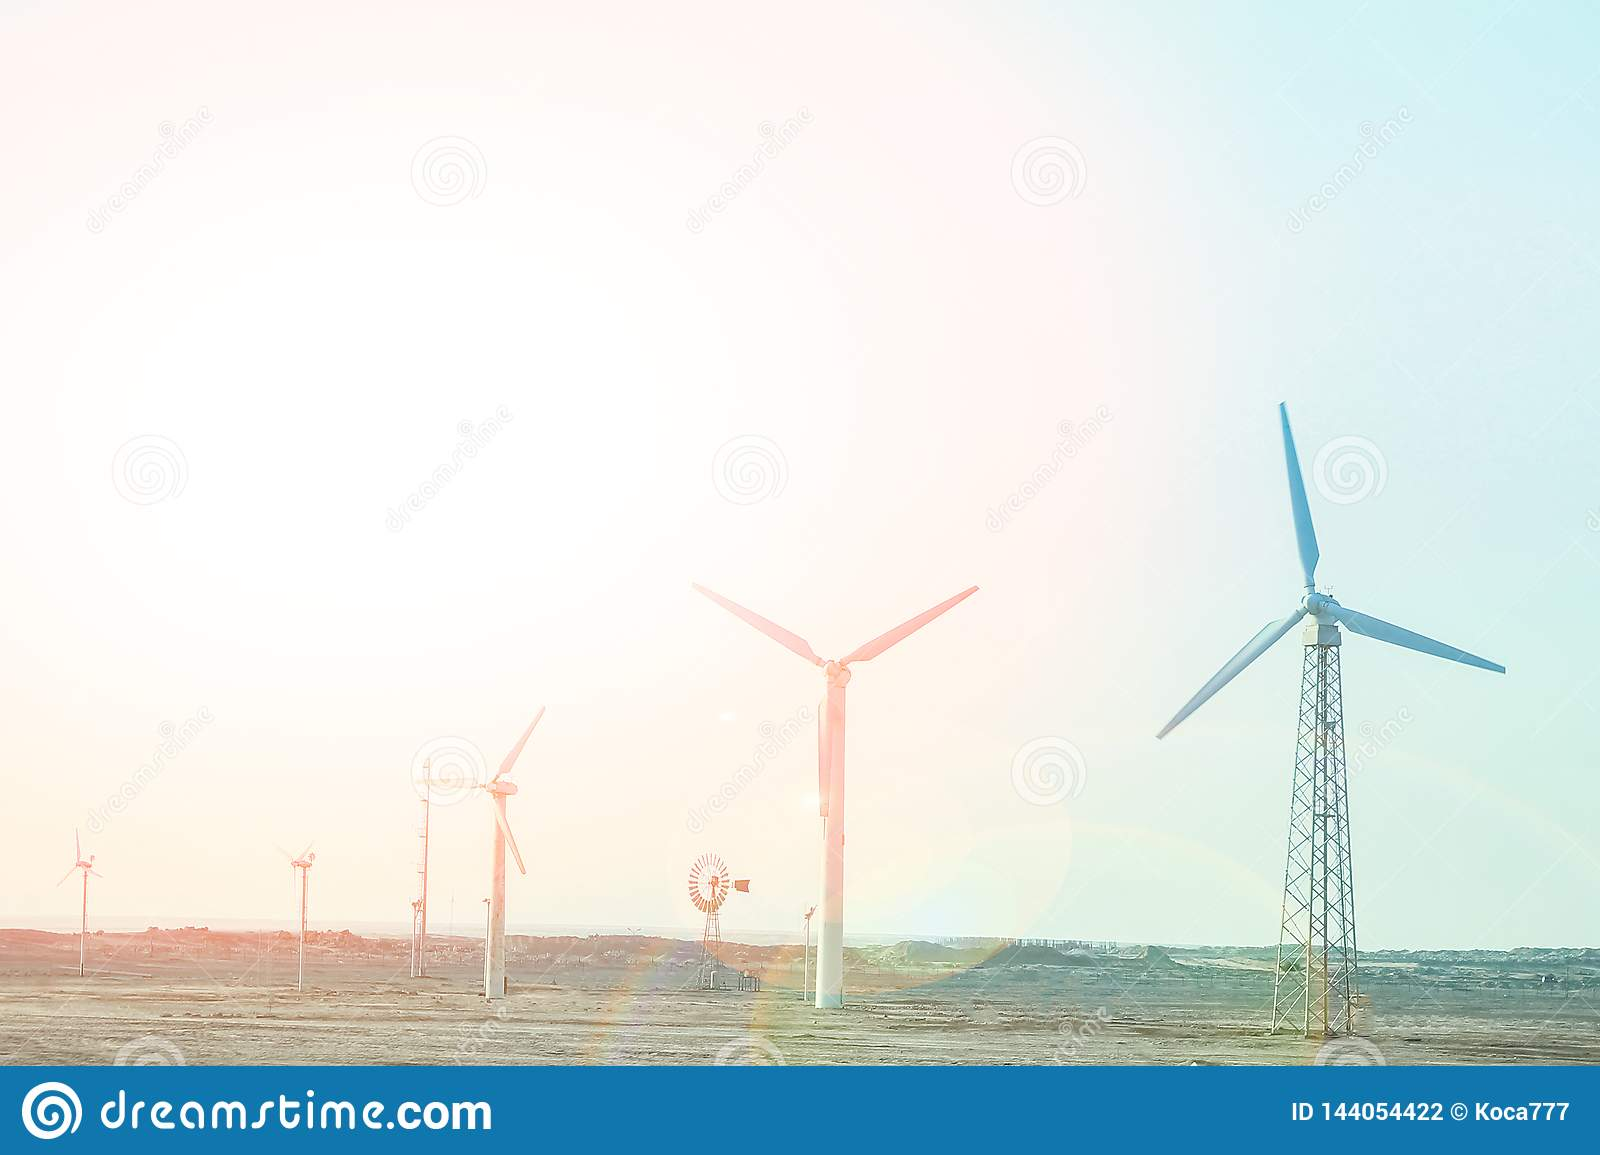 Stylishly practical windmills in the desert background